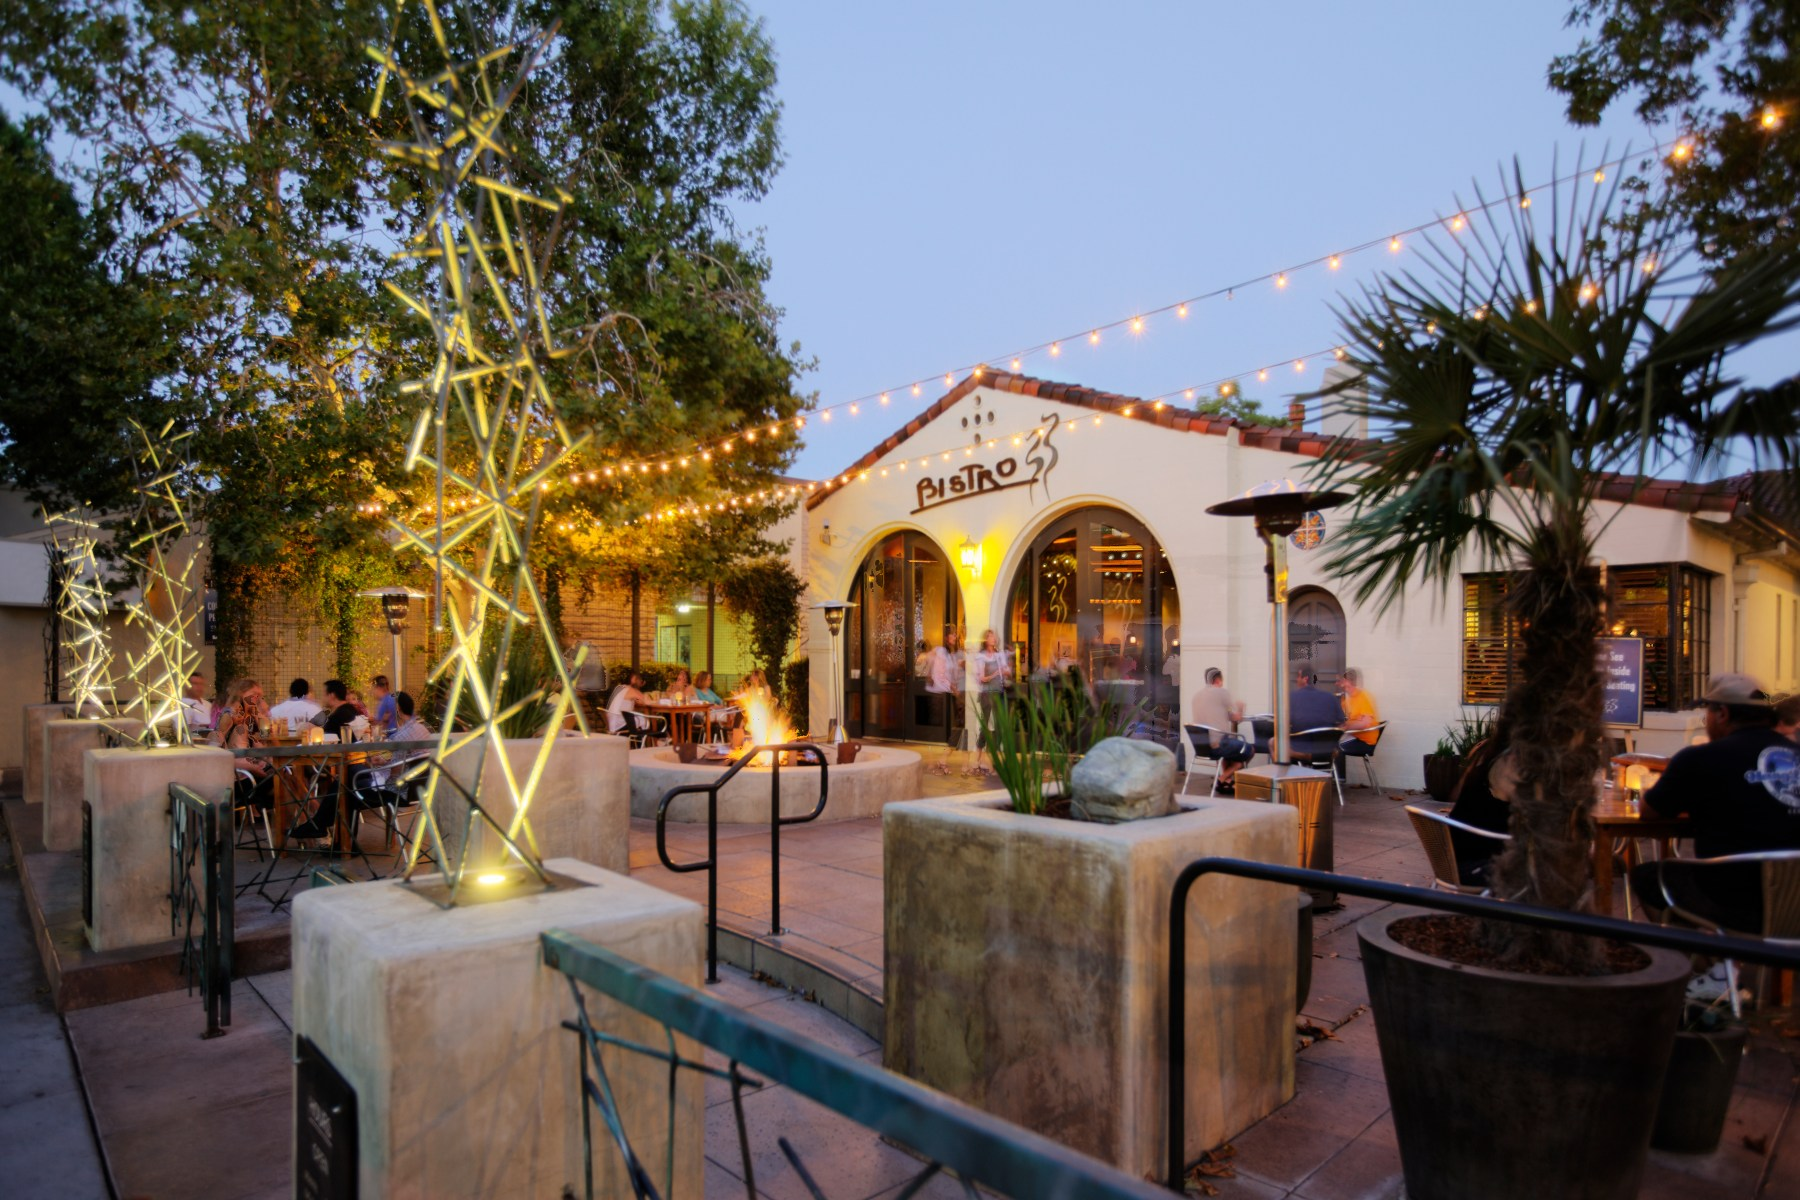 Photo of Bistro 33 in Davis, Ca, by YHLA